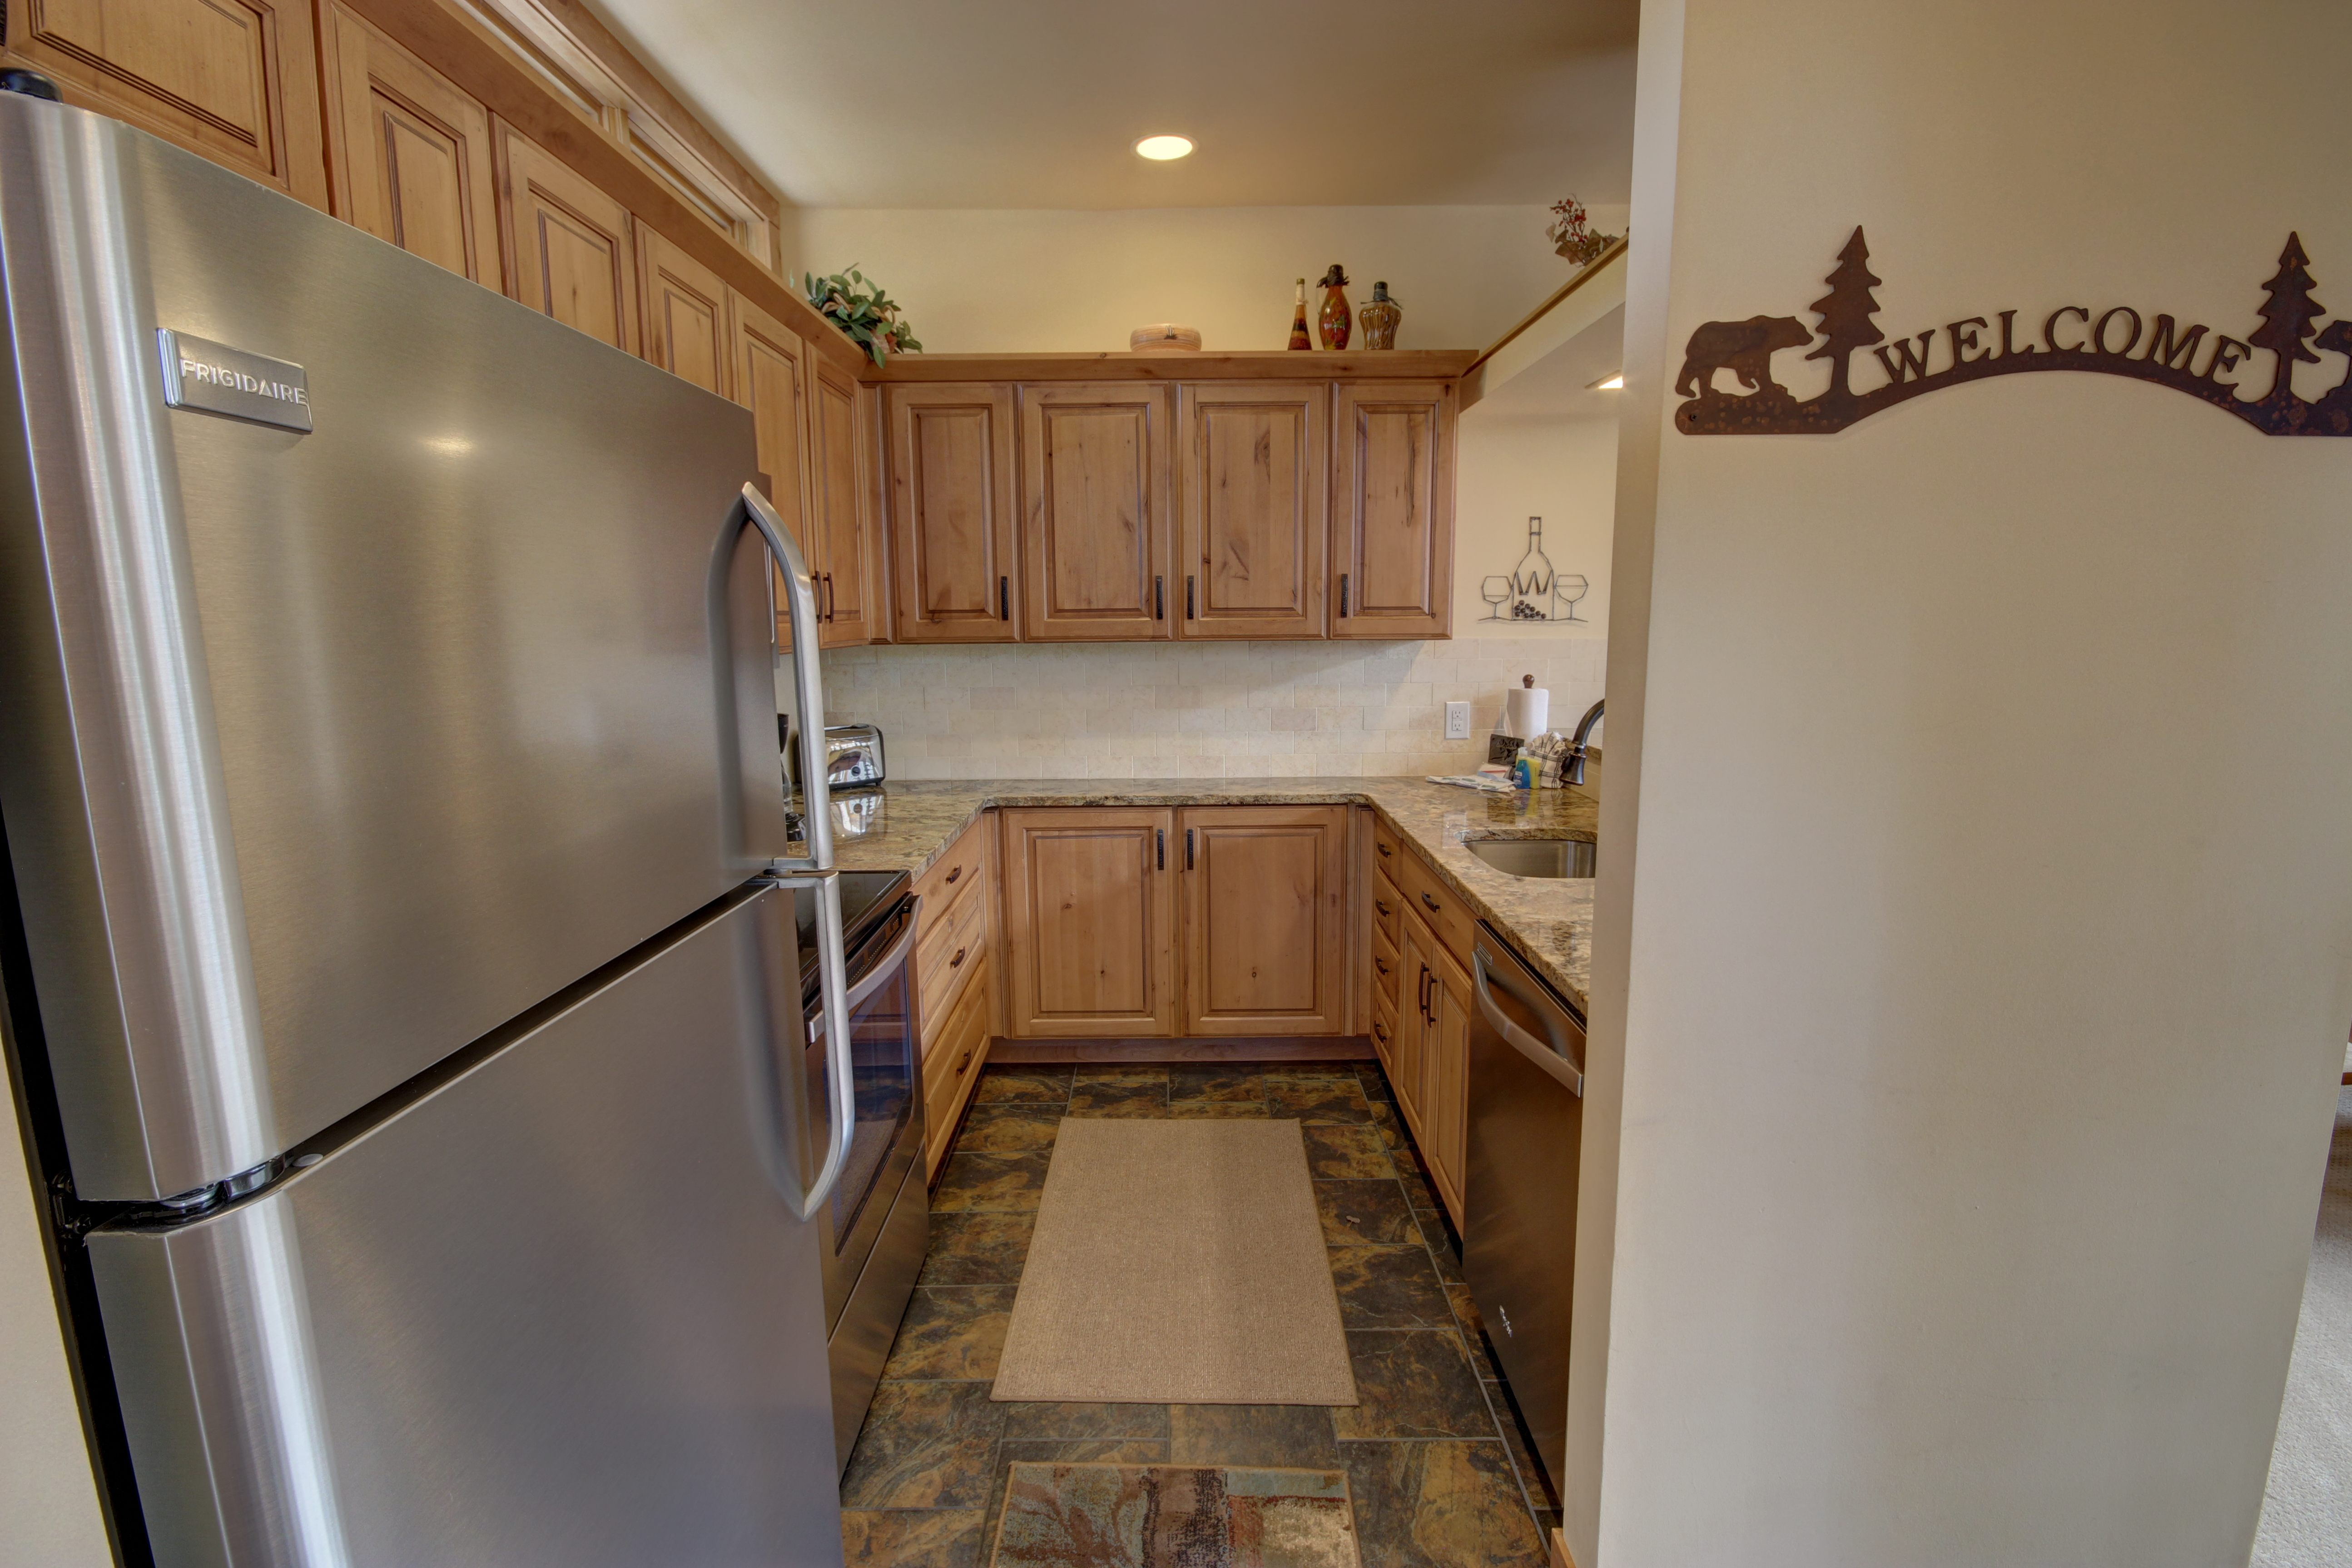 Kitchen with room to cook and store appliances